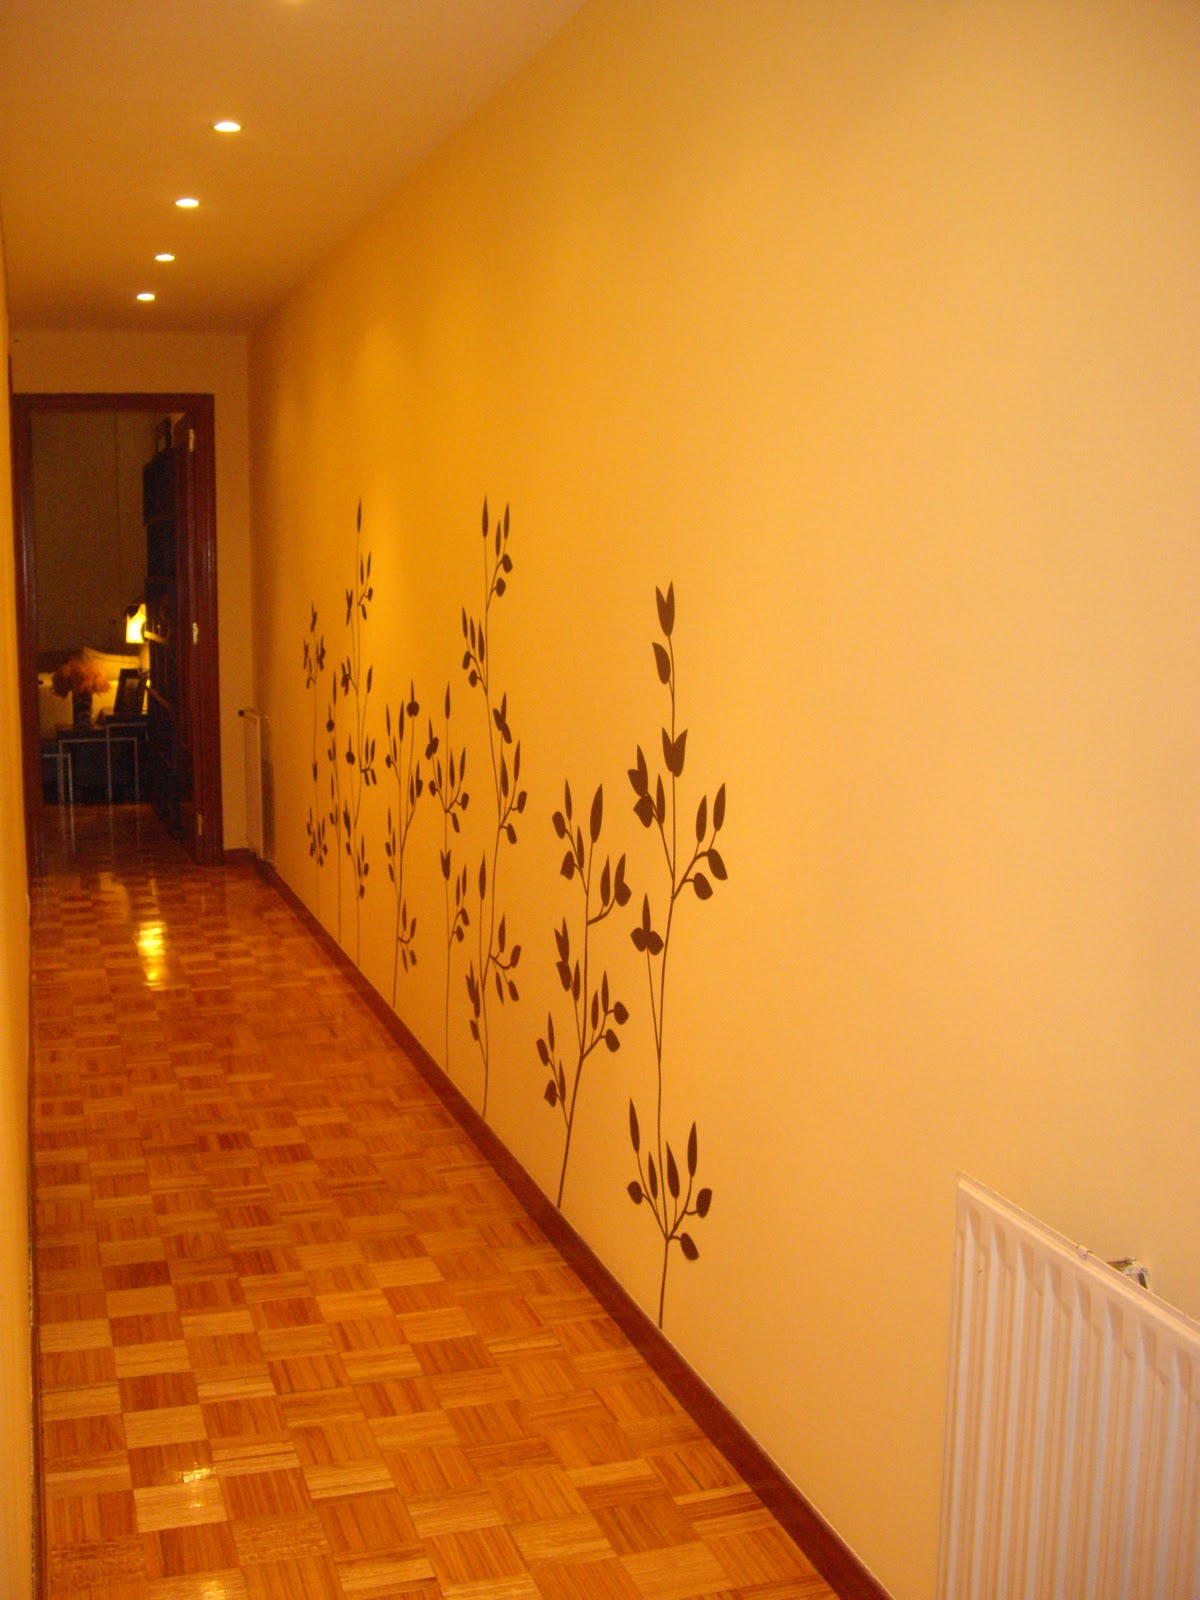 1000 images about pasillos on pinterest hallways - Ideas para pintar un pasillo ...